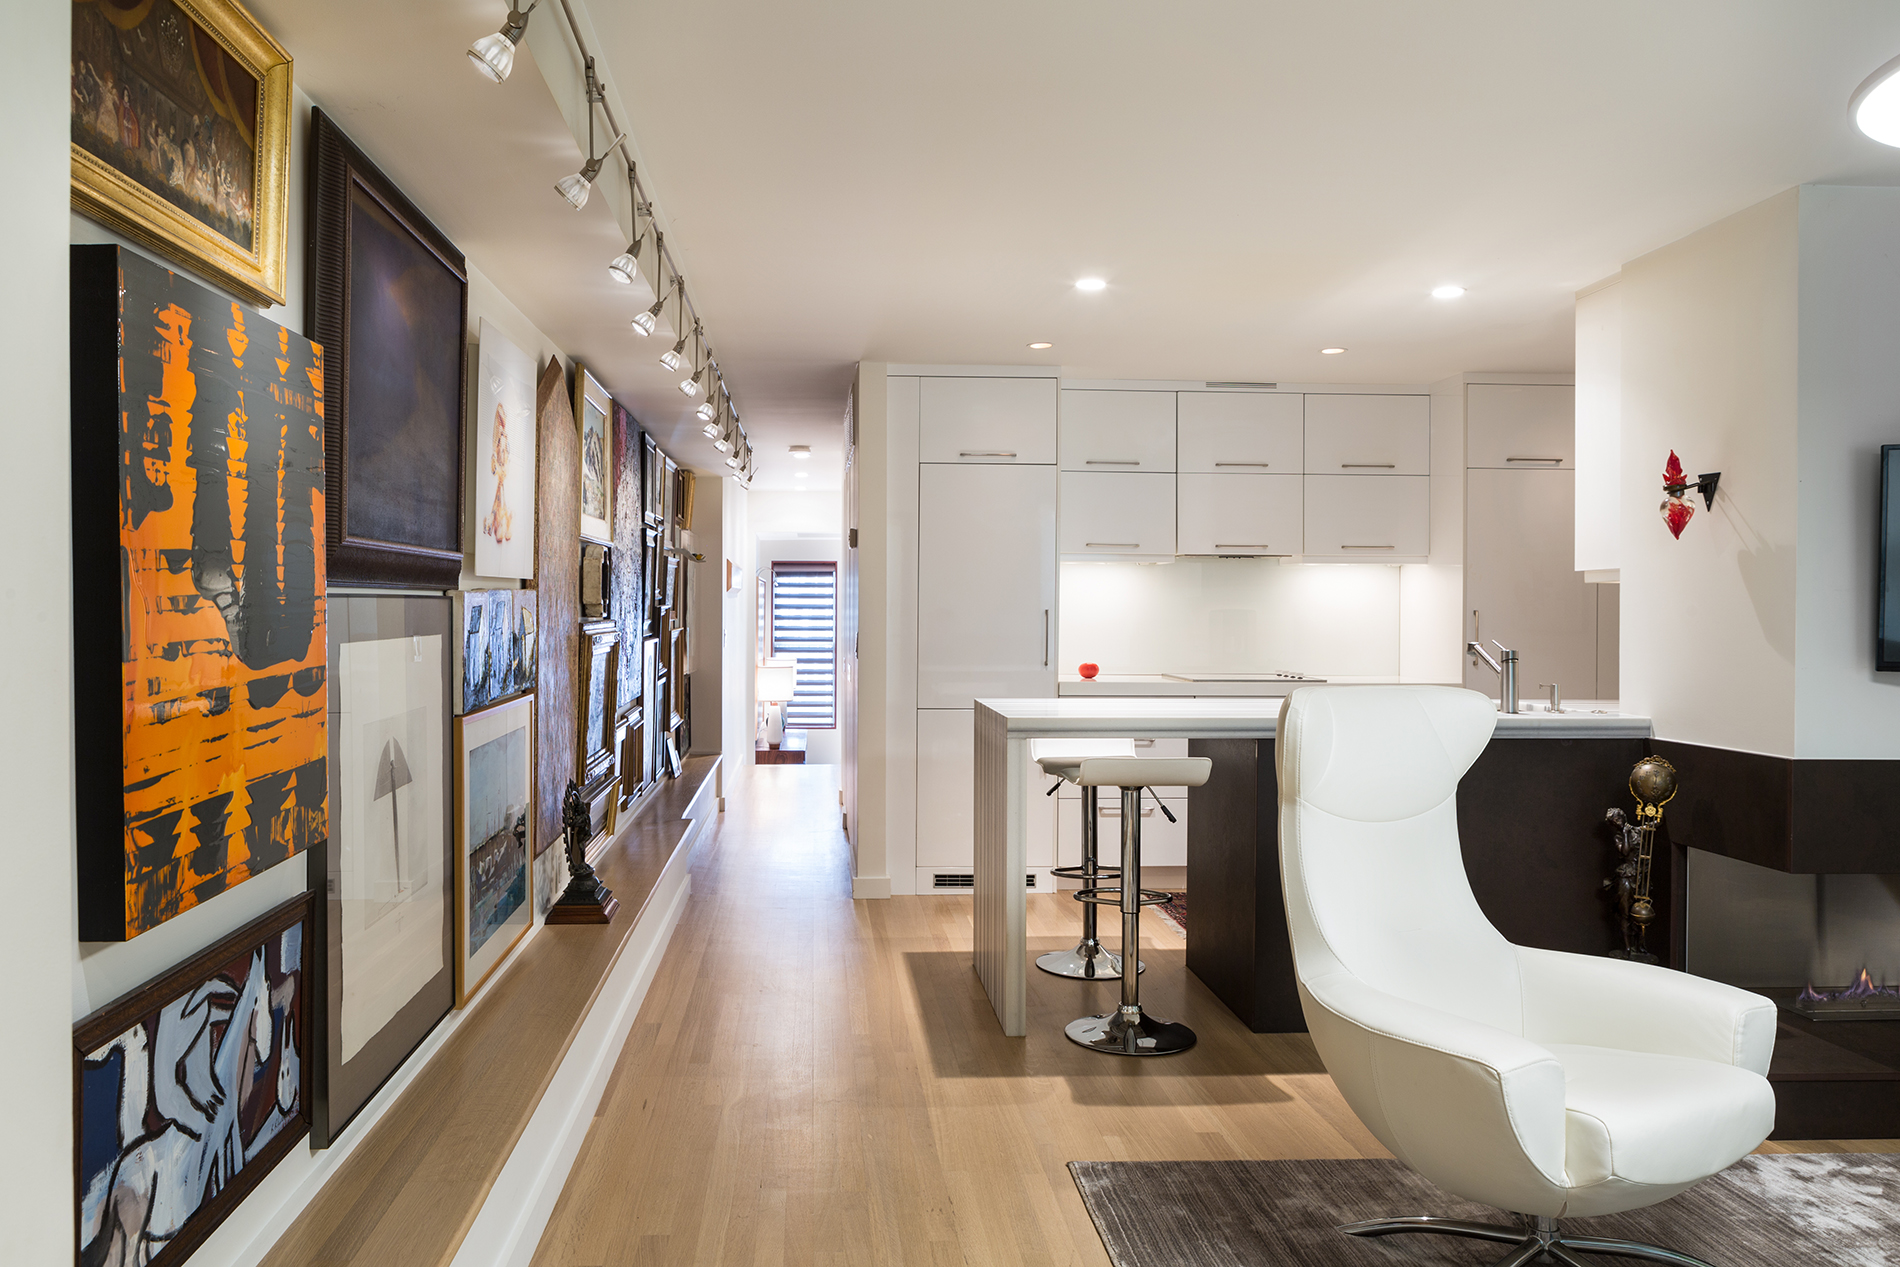 Art wall and kitchen in DC duplex